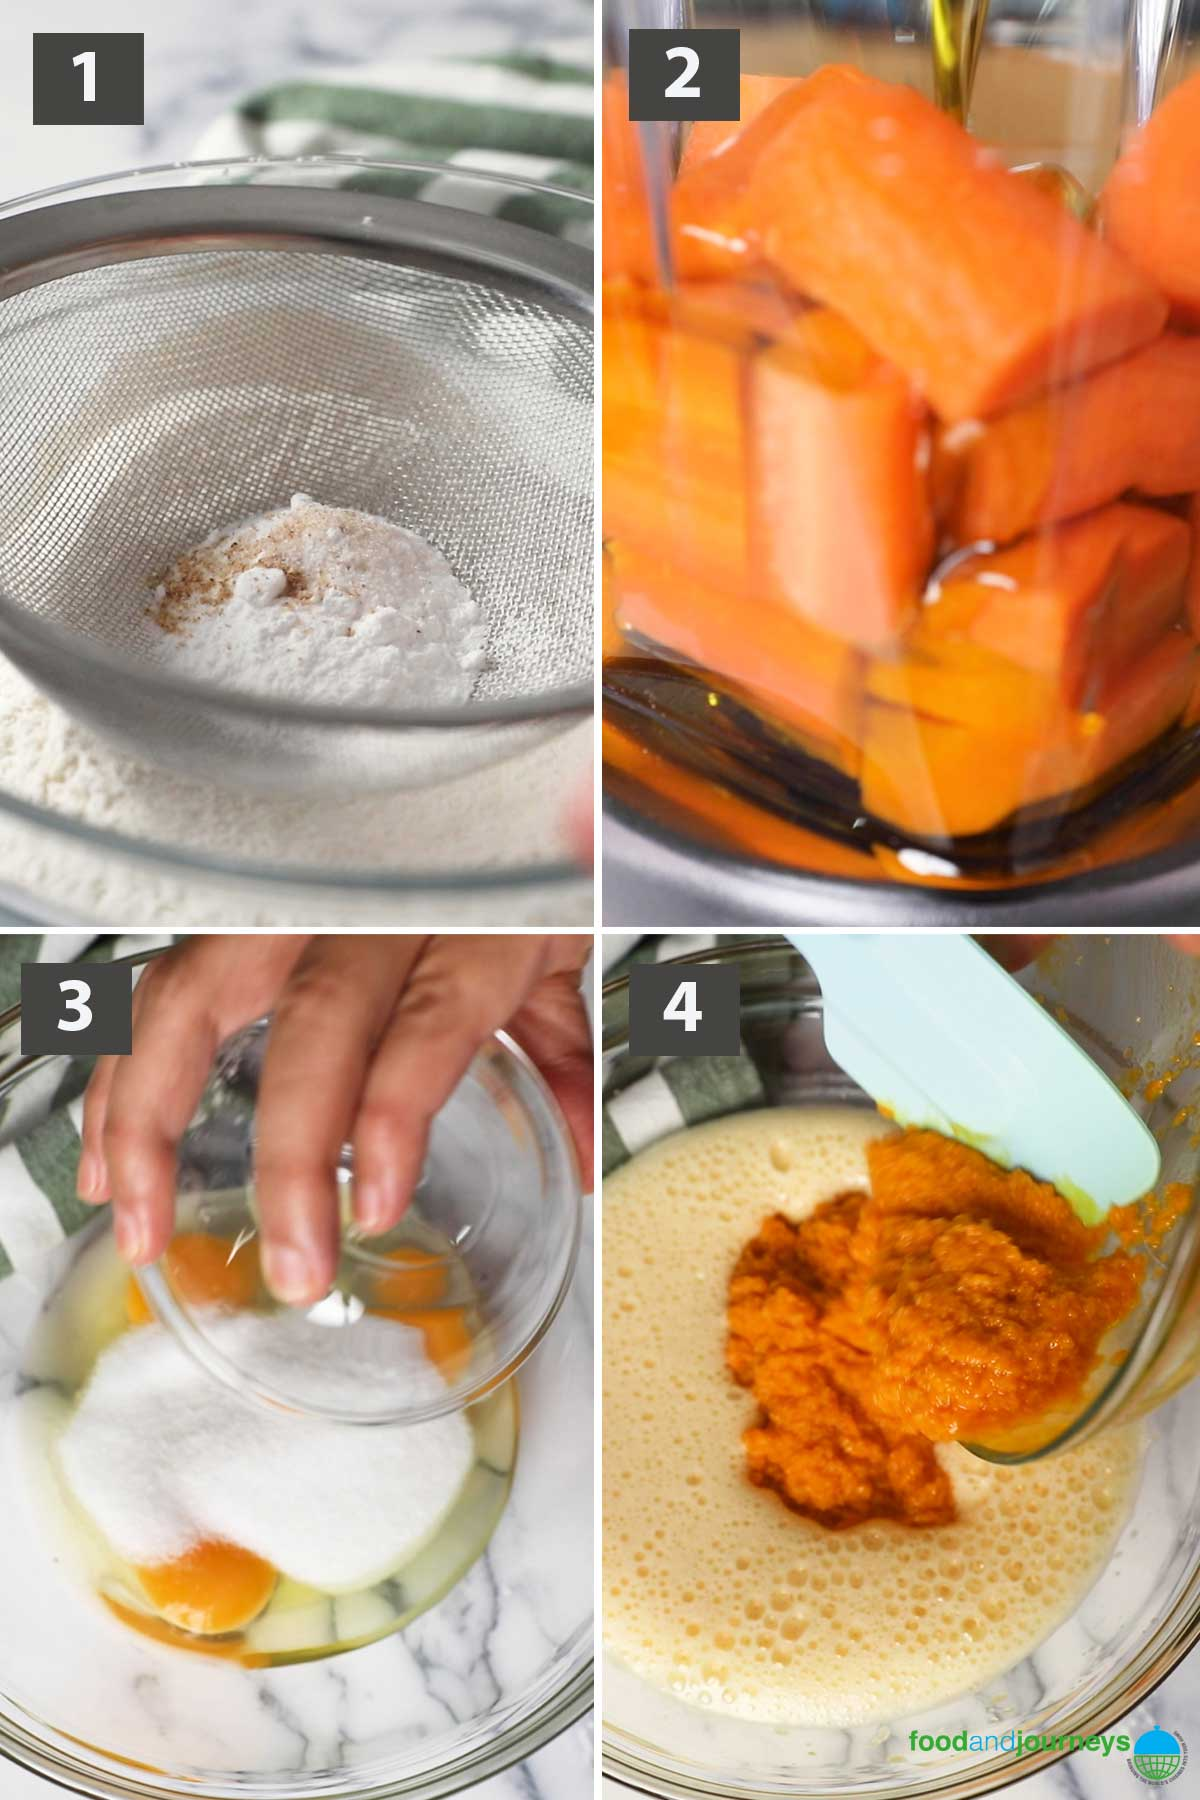 First part of a collage of images showing the step by step process on how easy it is to make carrot cake at home.